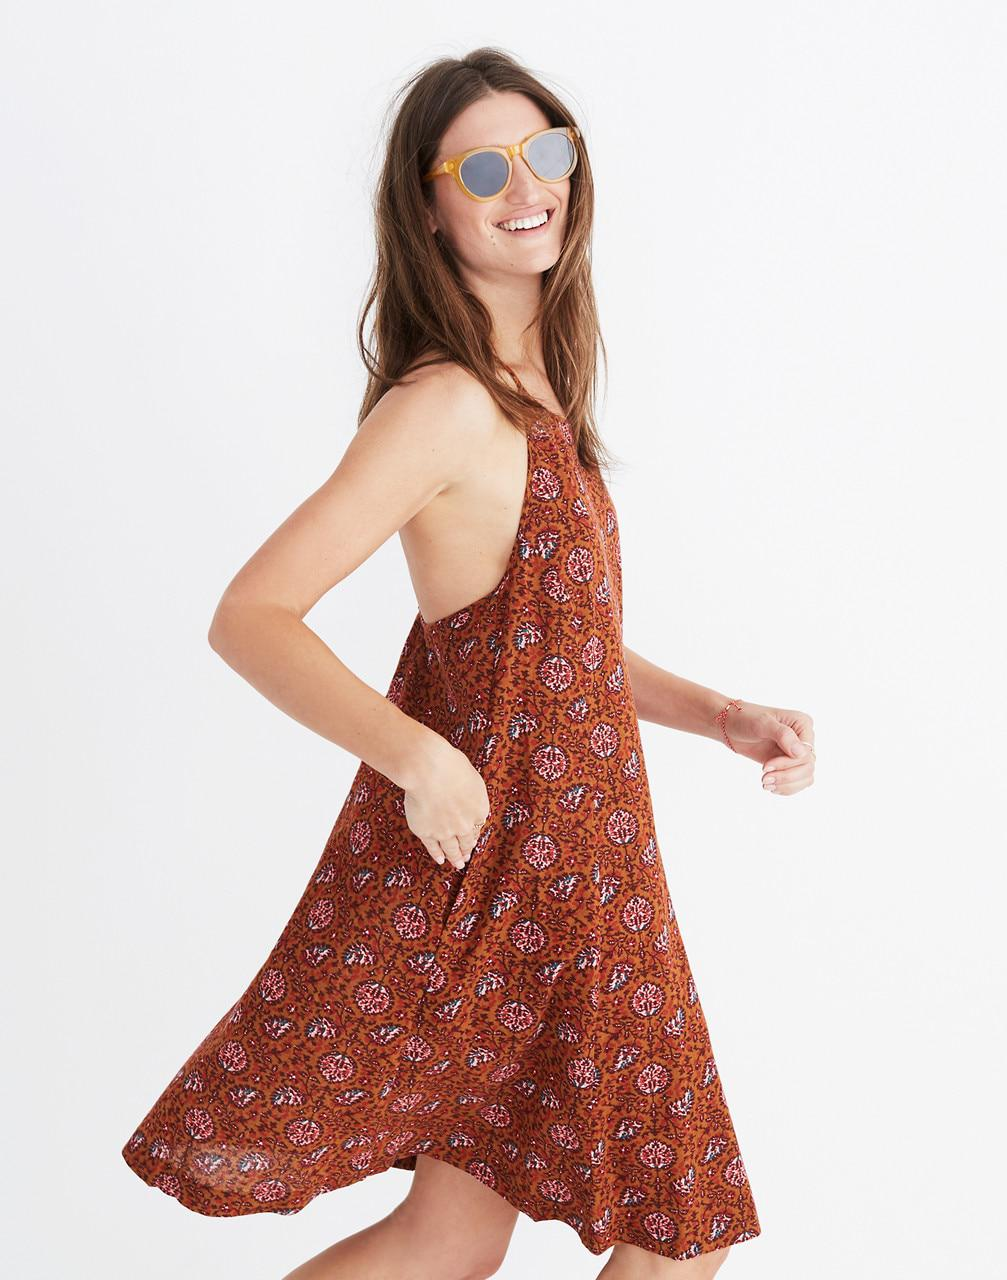 76b44d1f21 Madewell Halter Cover-up Dress In Warm Paisley - Lyst